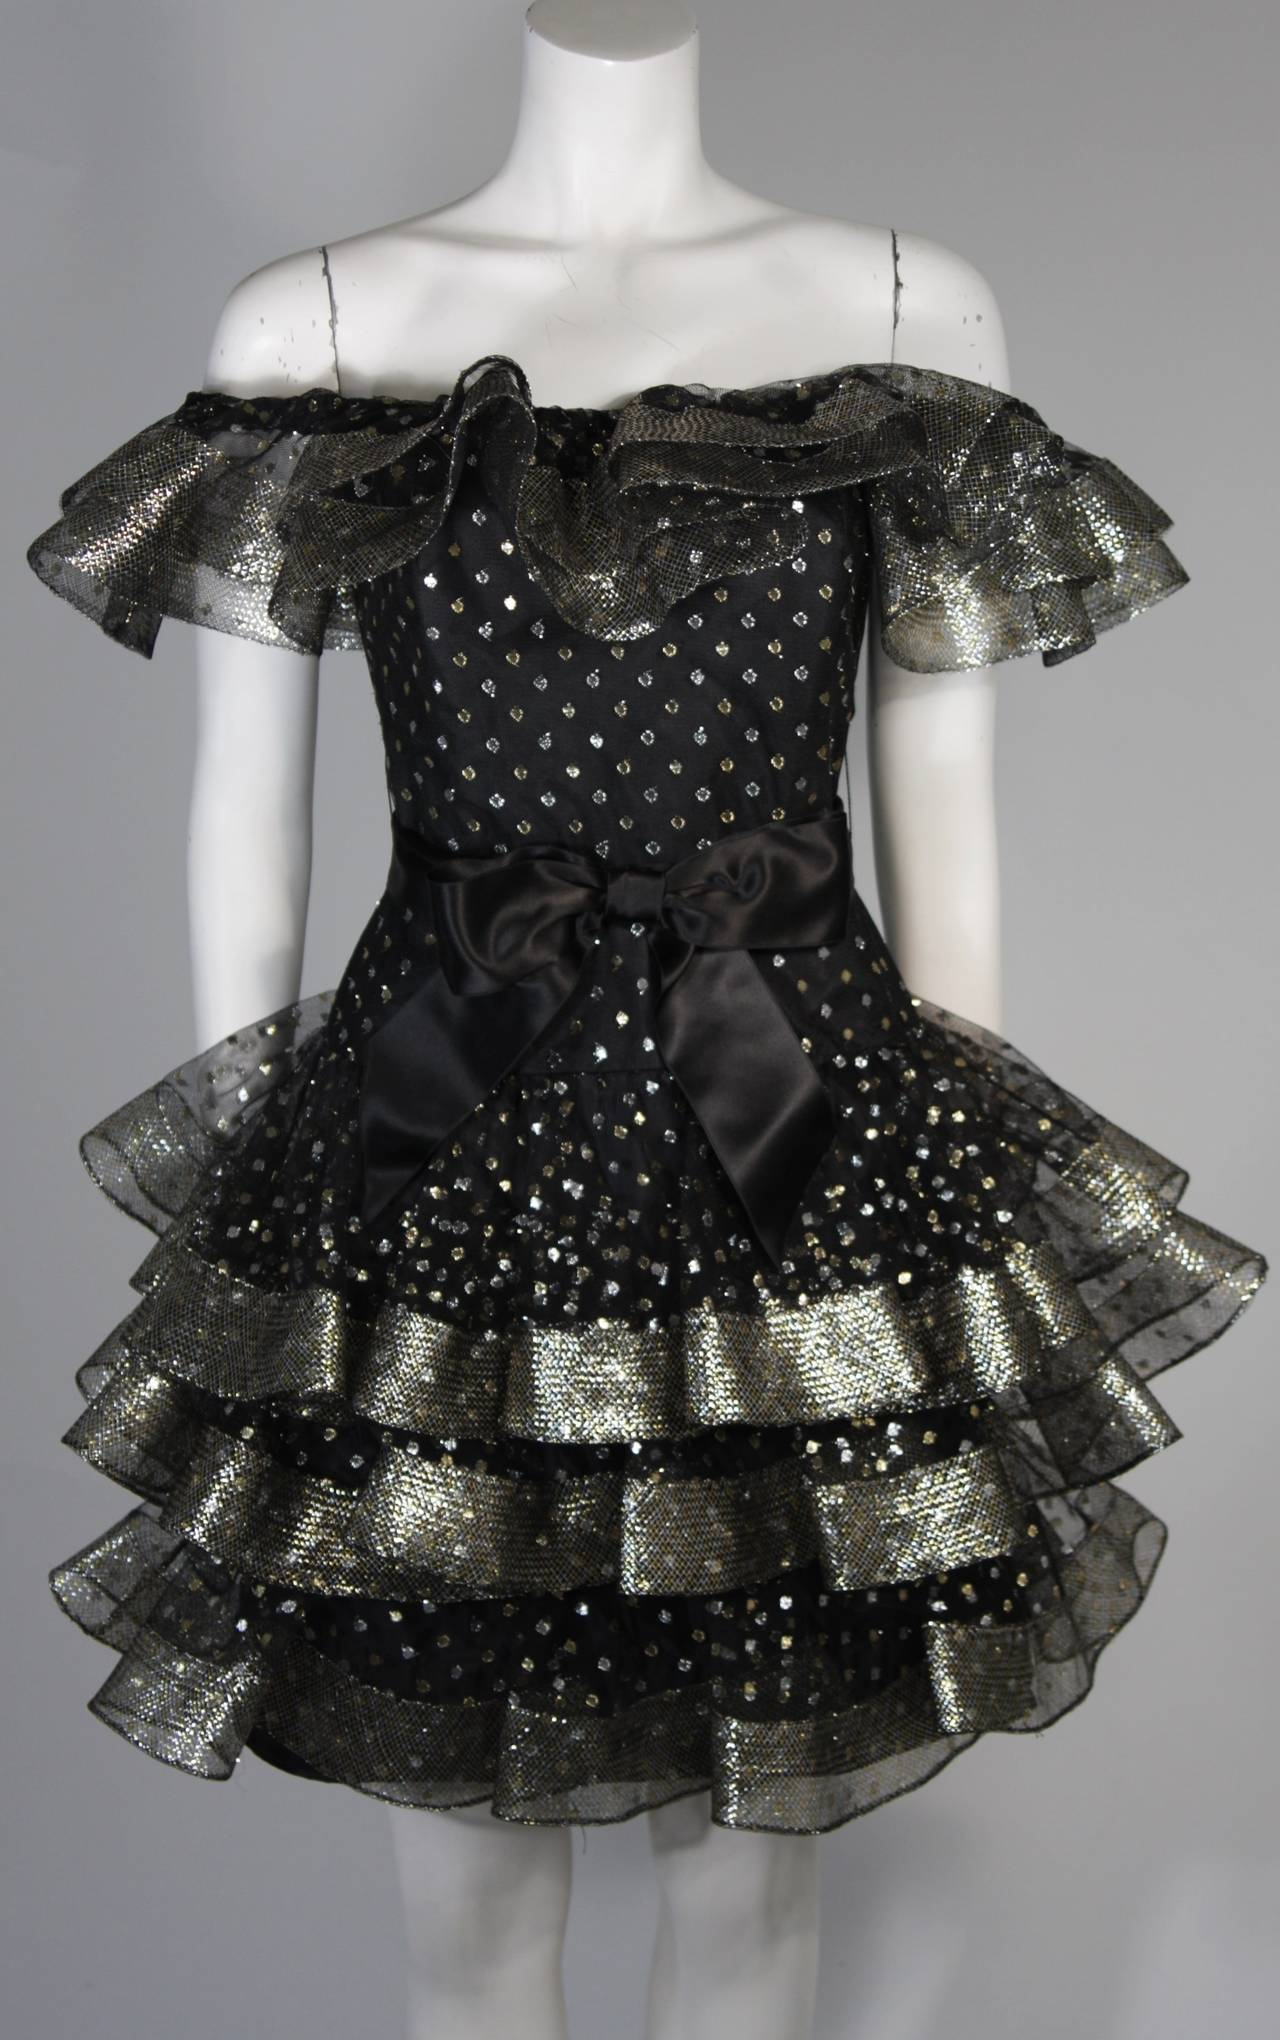 Victor Costa Black Ruffled Cocktail Dress with Silver and Gold Polka Dots Size 2 In Excellent Condition For Sale In Los Angeles, CA